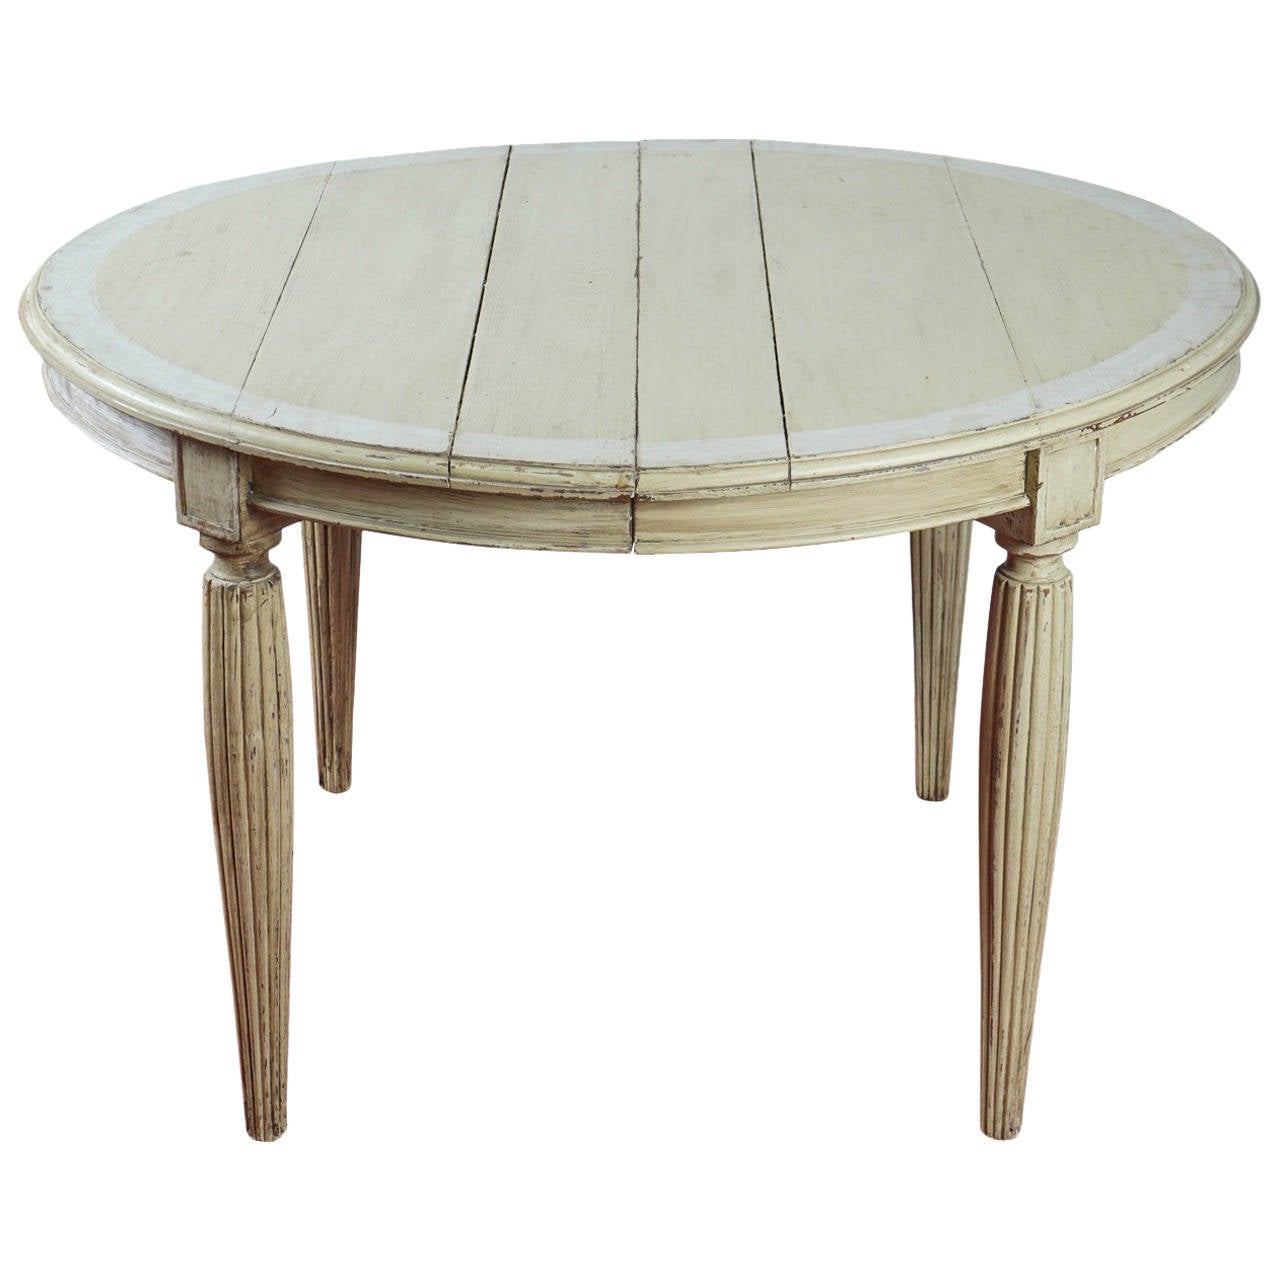 Antique Swedish Oval Dining Table at 1stdibs : 2734243l from 1stdibs.com size 1280 x 1280 jpeg 87kB